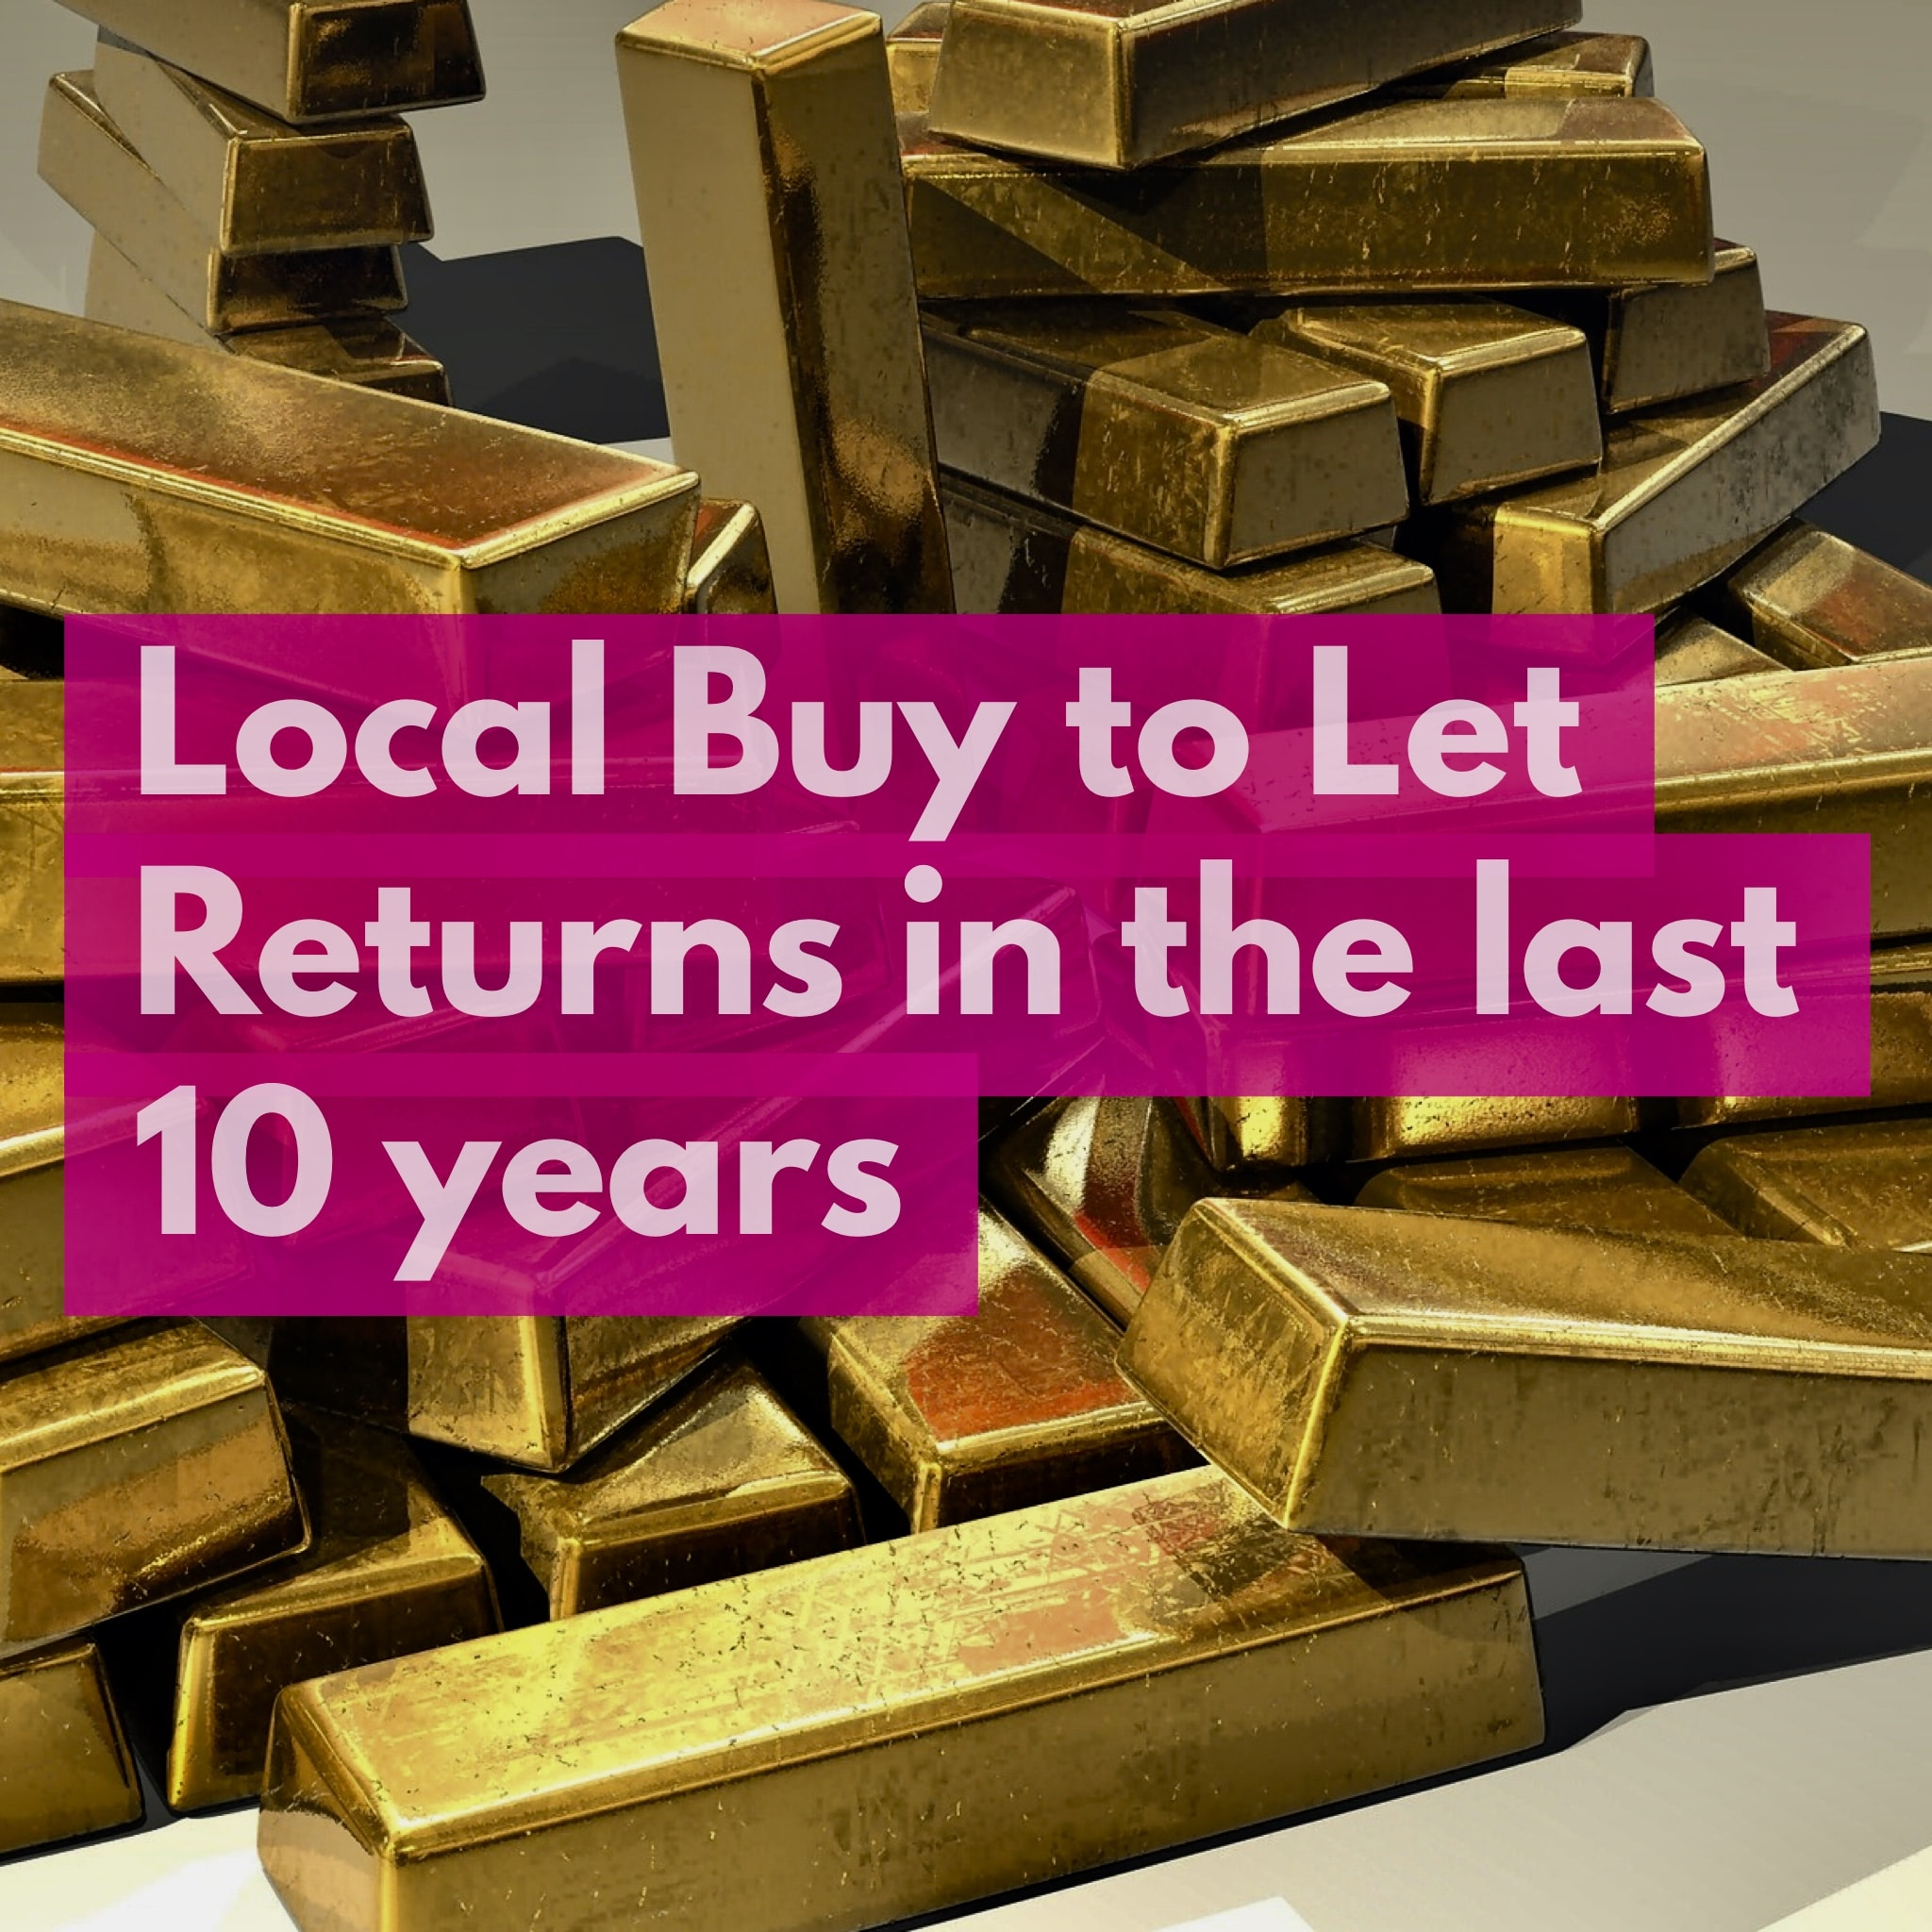 Canterbury Buy To Let Annual Returns Hit 12.23% in Last 10 Years